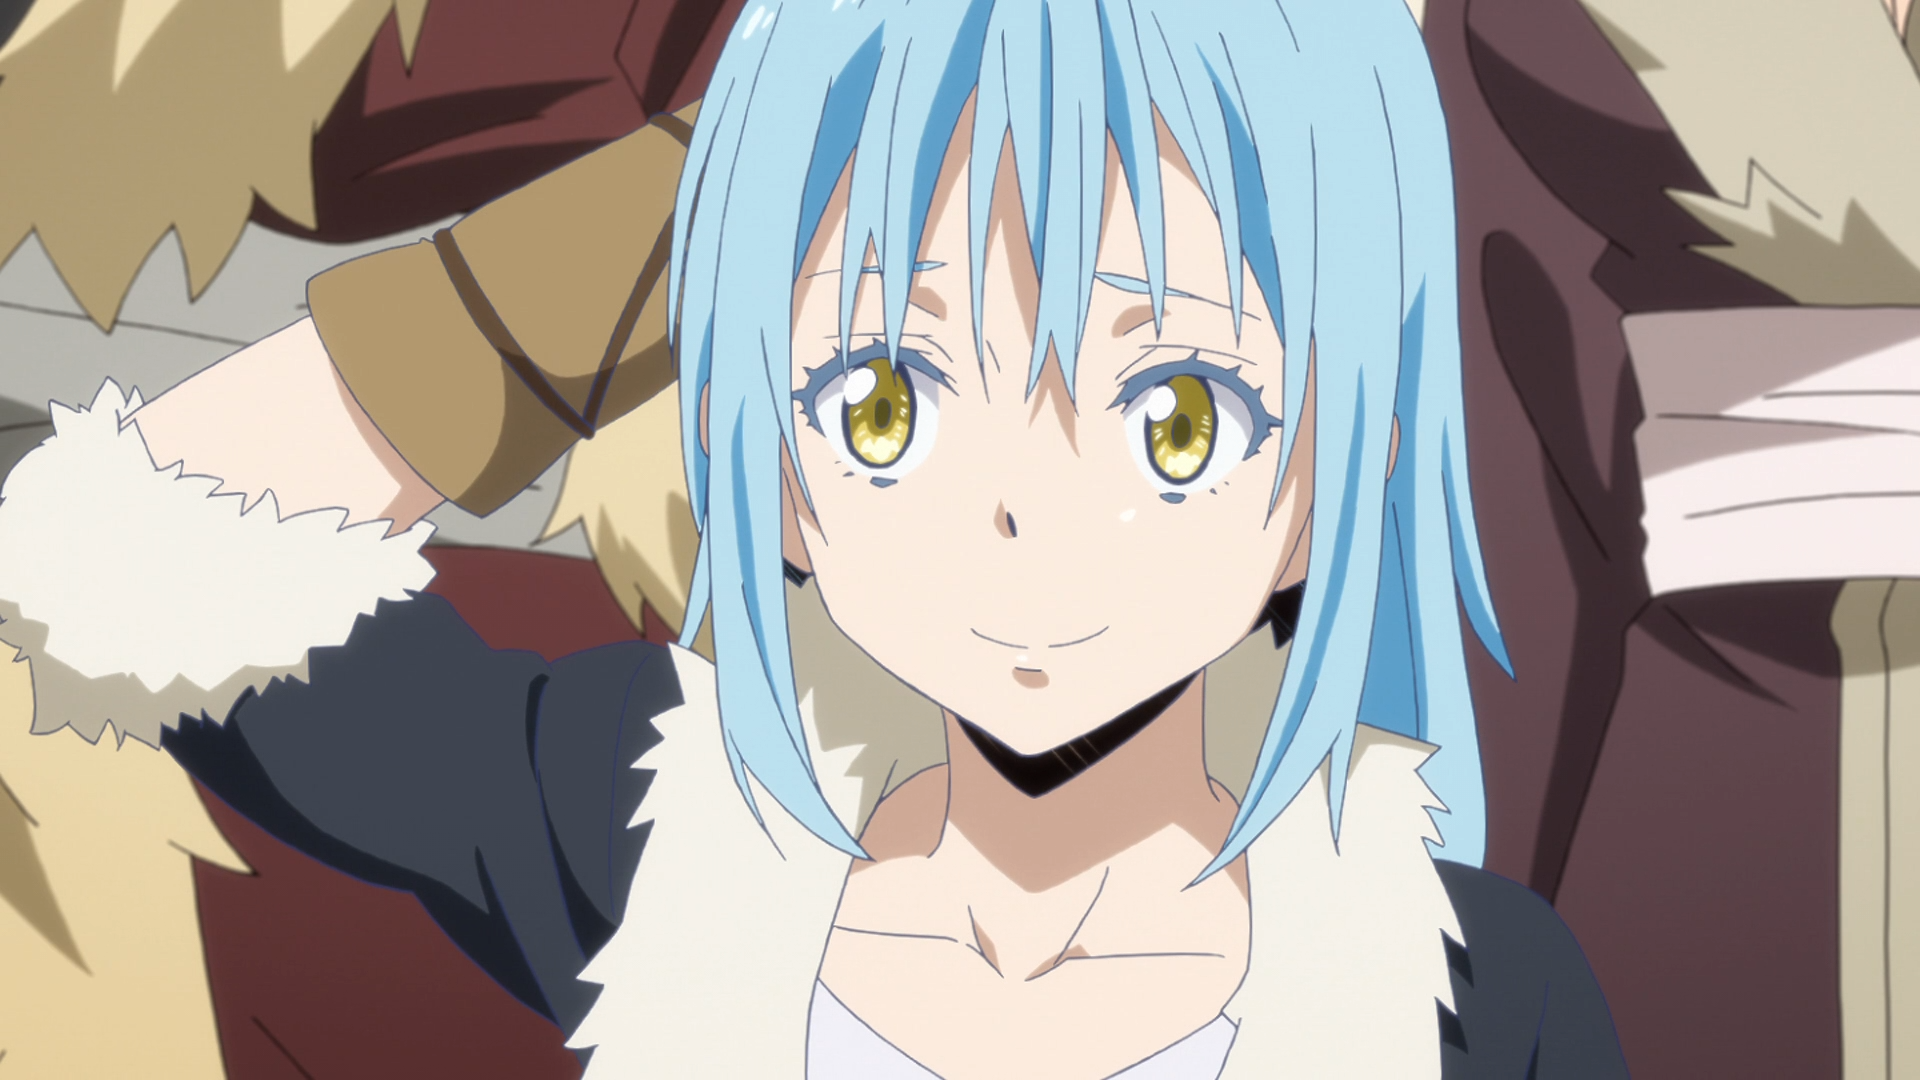 In human form, Rimiru attempts to negotiate with an envoy from the Lizardmen tribes in a scene from the That Time I Got Reincarnated as a Slime TV anime.